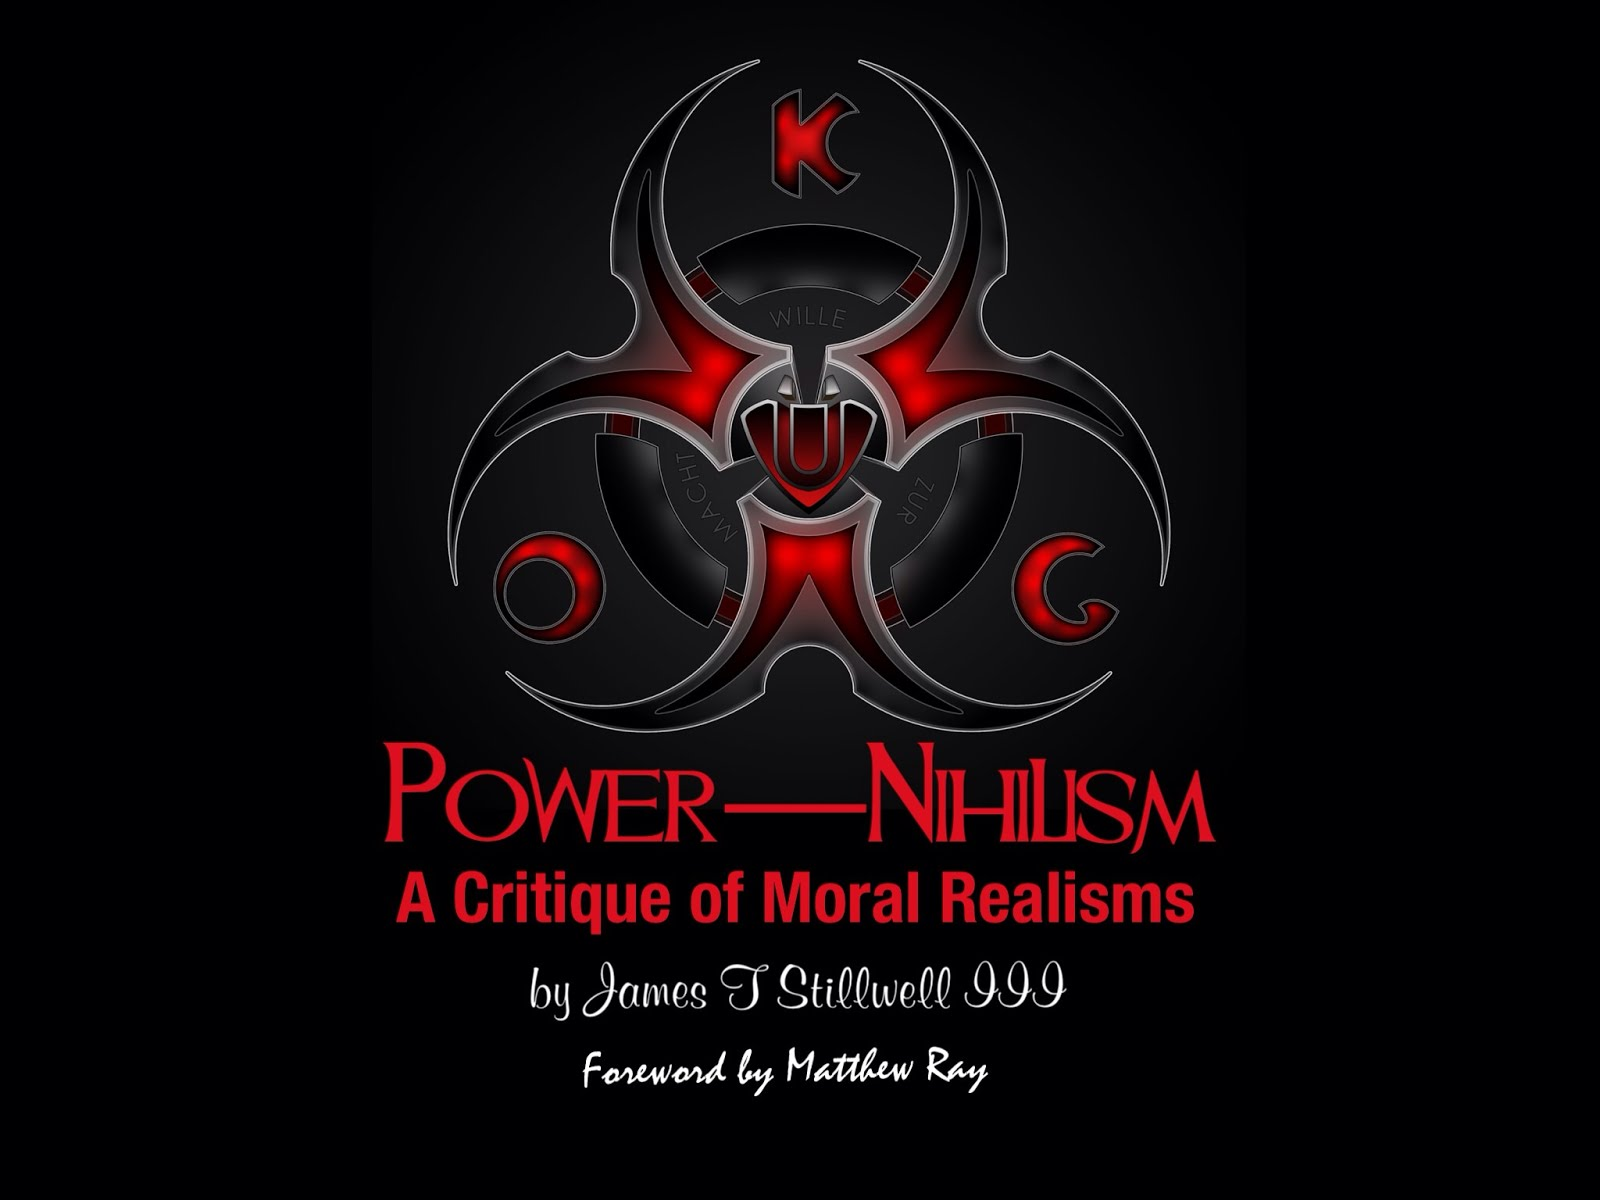 Power—Nihilism Ebook Sampler (video)